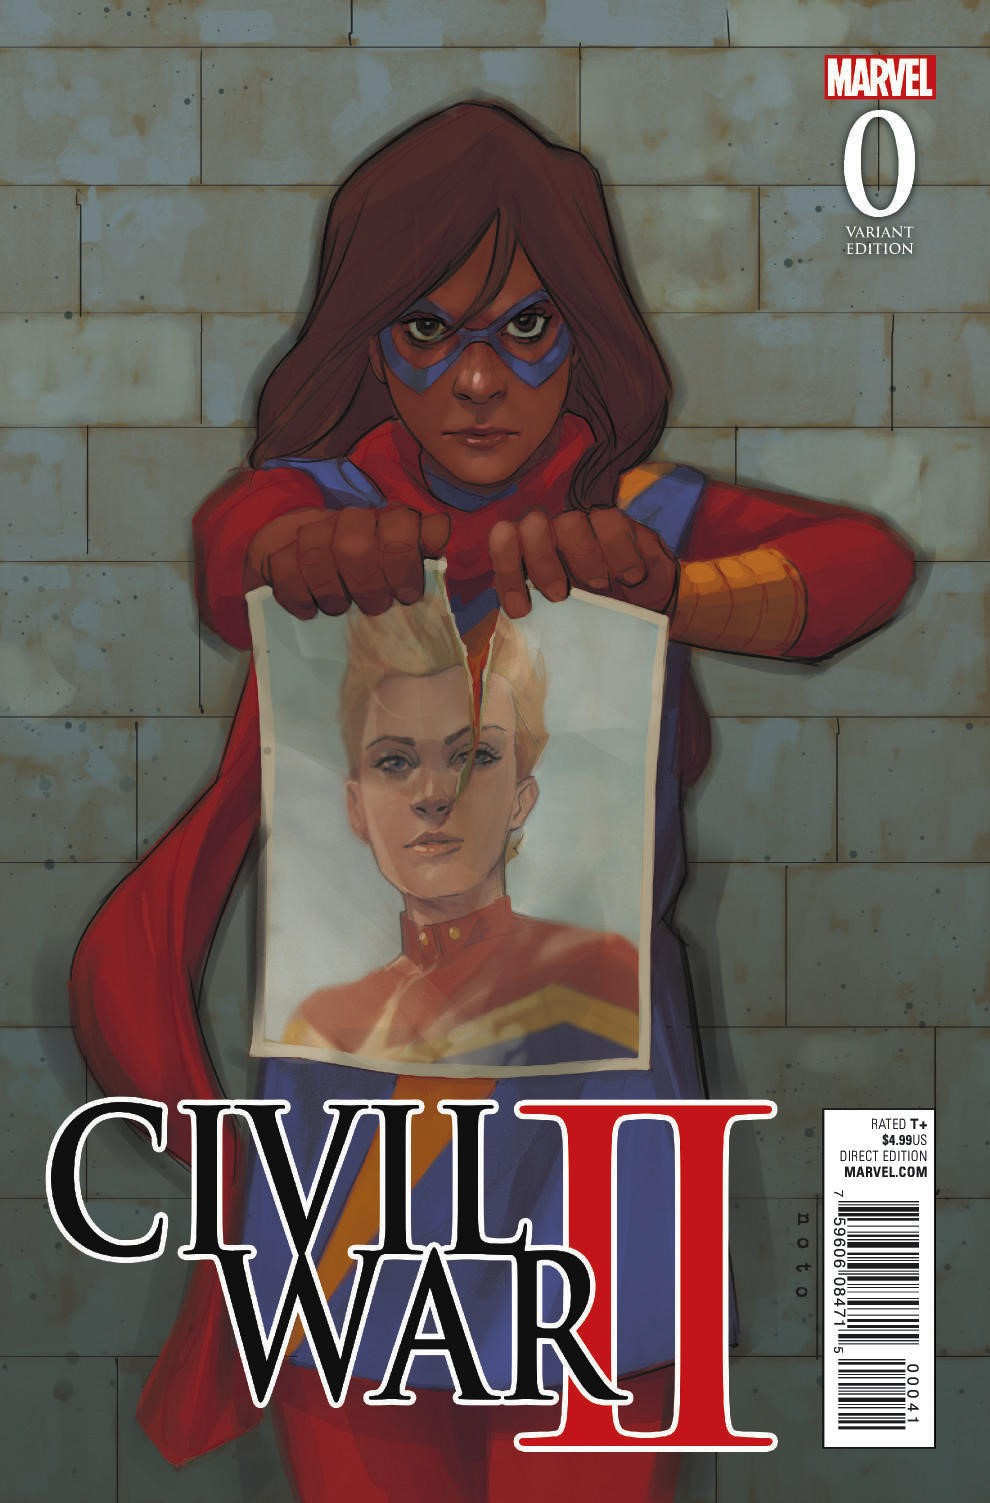 Character Variant by Phil Noto